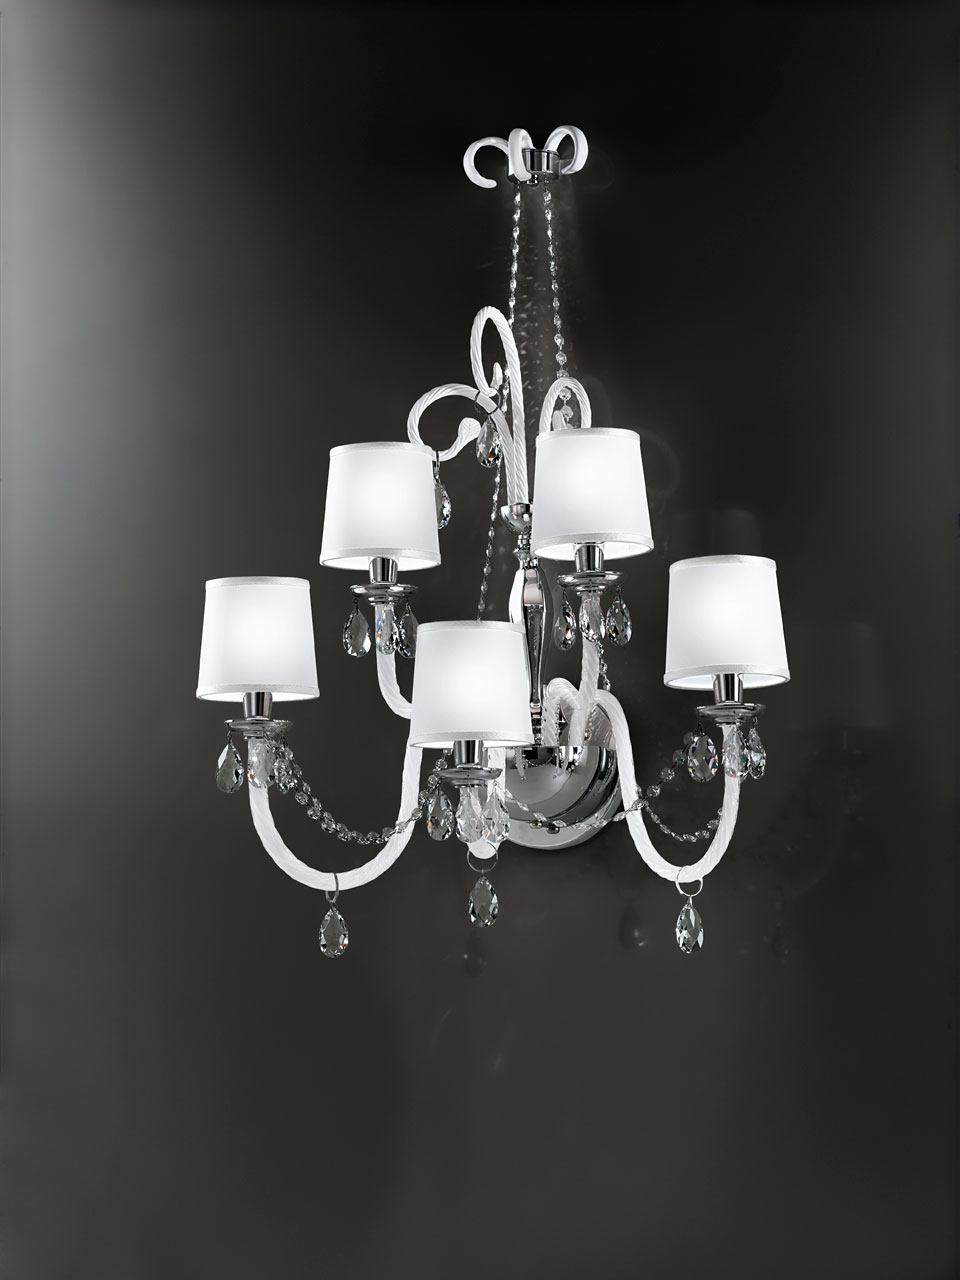 Large 5 lights white glass wall sconce with ivory shade LENOIR. Italamp.